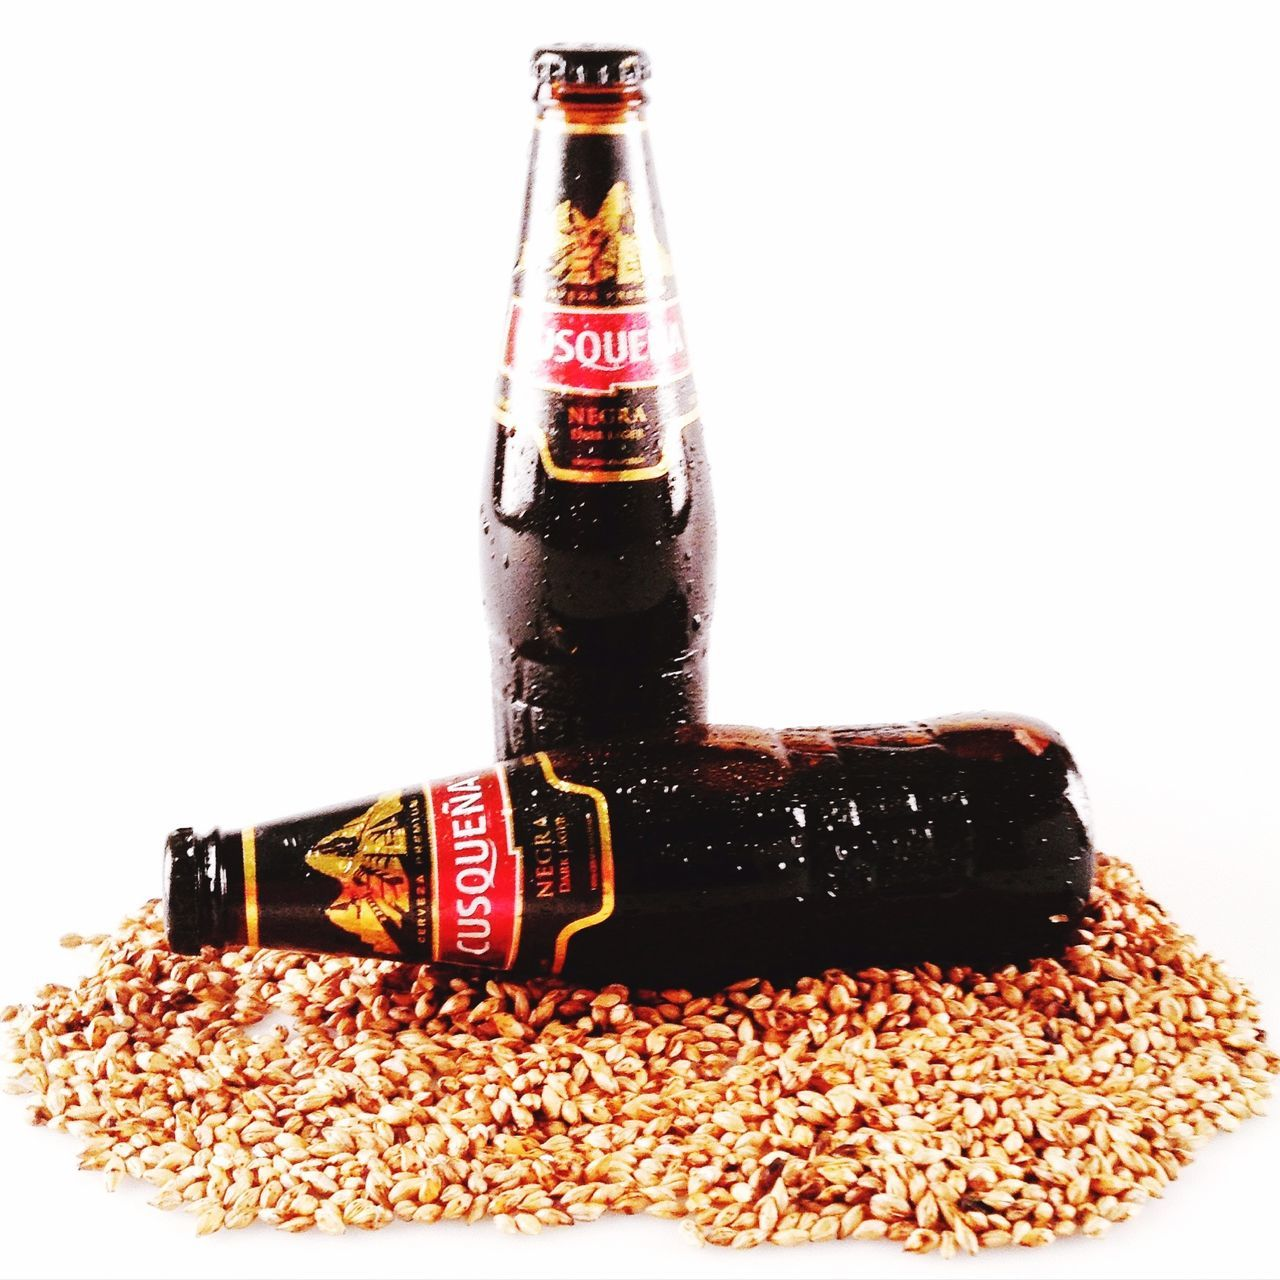 bottle, food and drink, studio shot, white background, close-up, no people, drink, grain, indoors, freshness, food, day